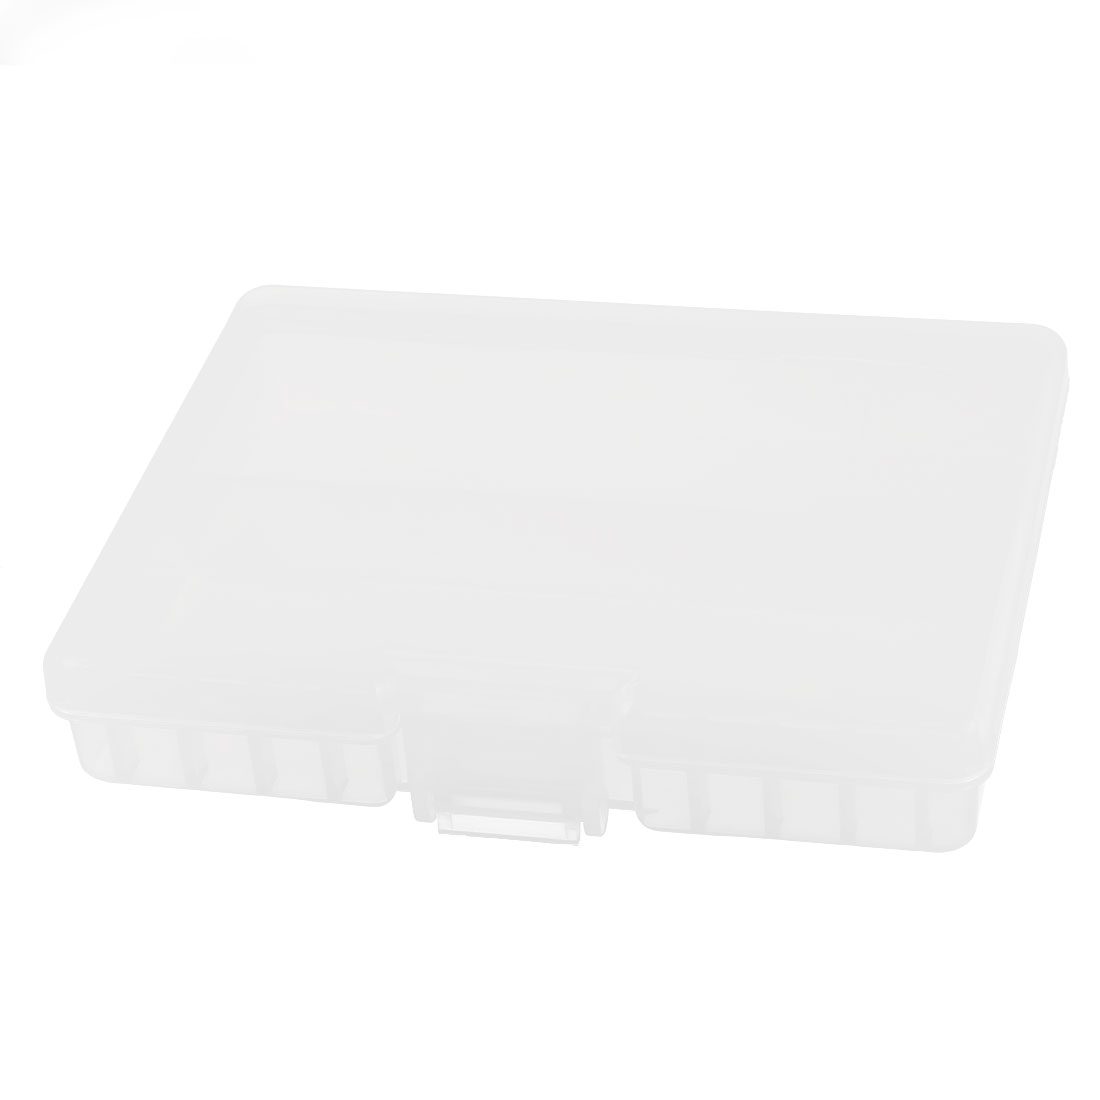 Clear Plastic Storage Box Case Container Holder for 48 x AAA Battery Batteries